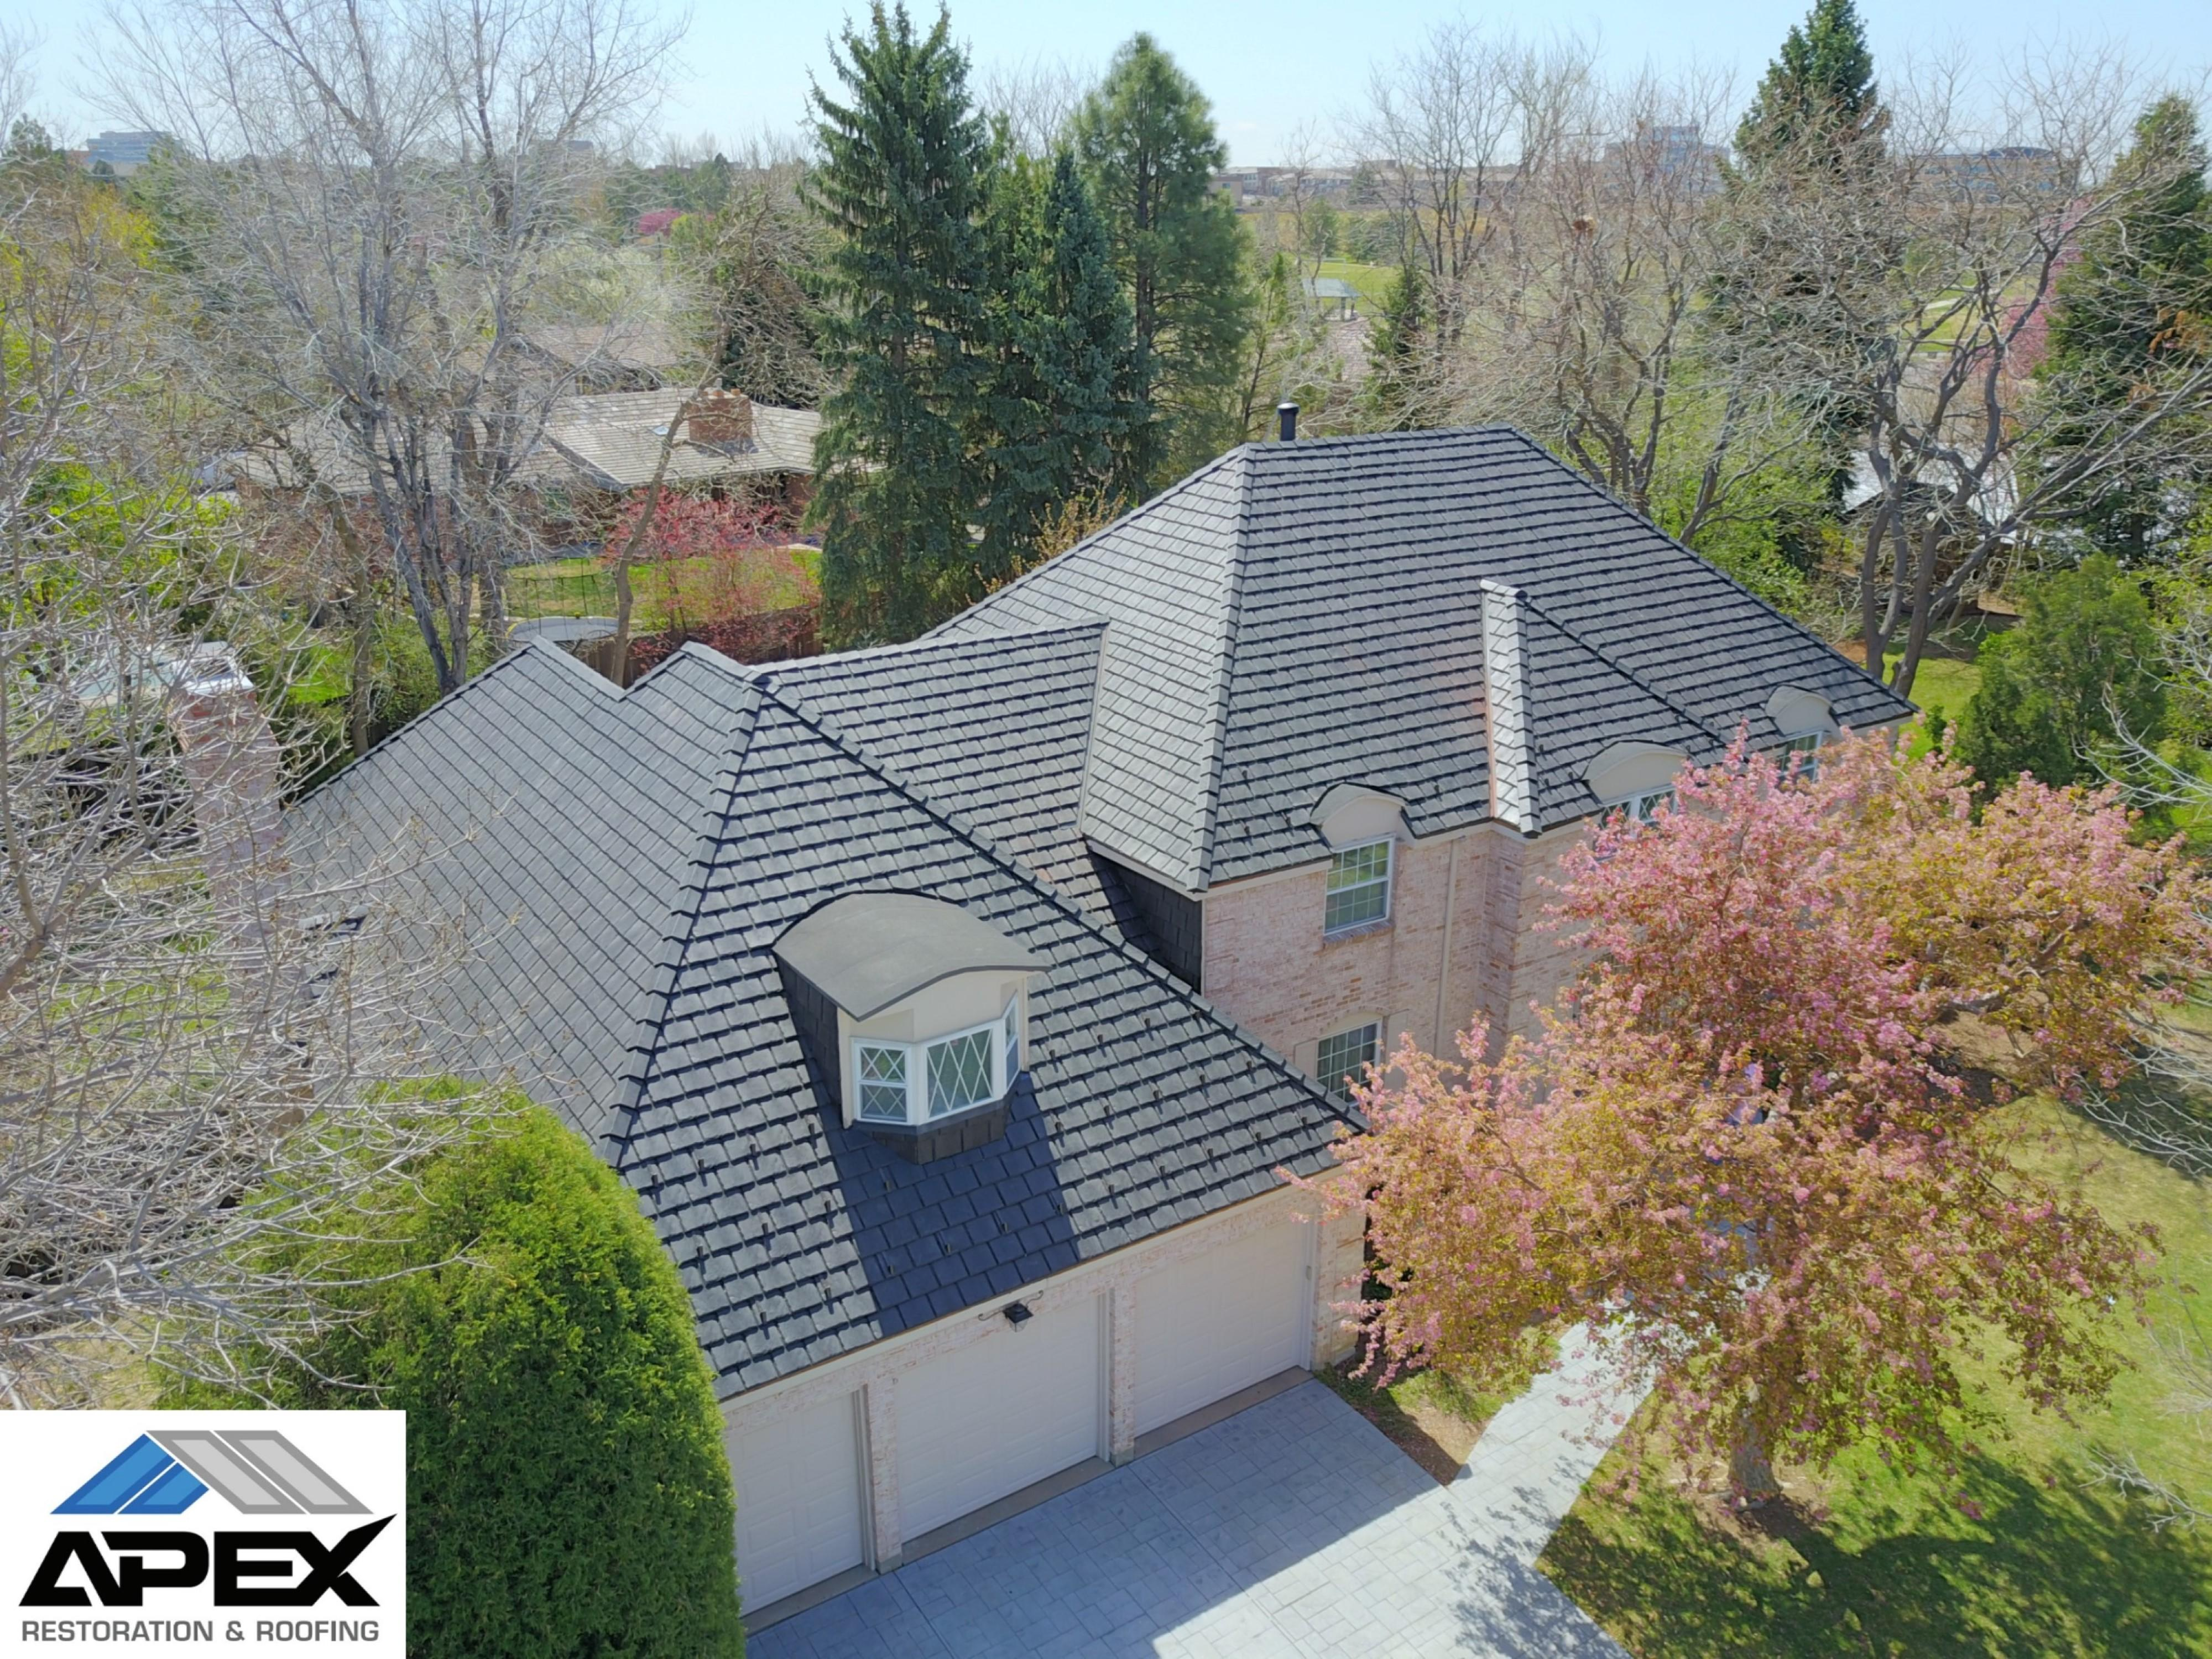 Apex Restoration And Roofing Coupons Near Me In Centennial